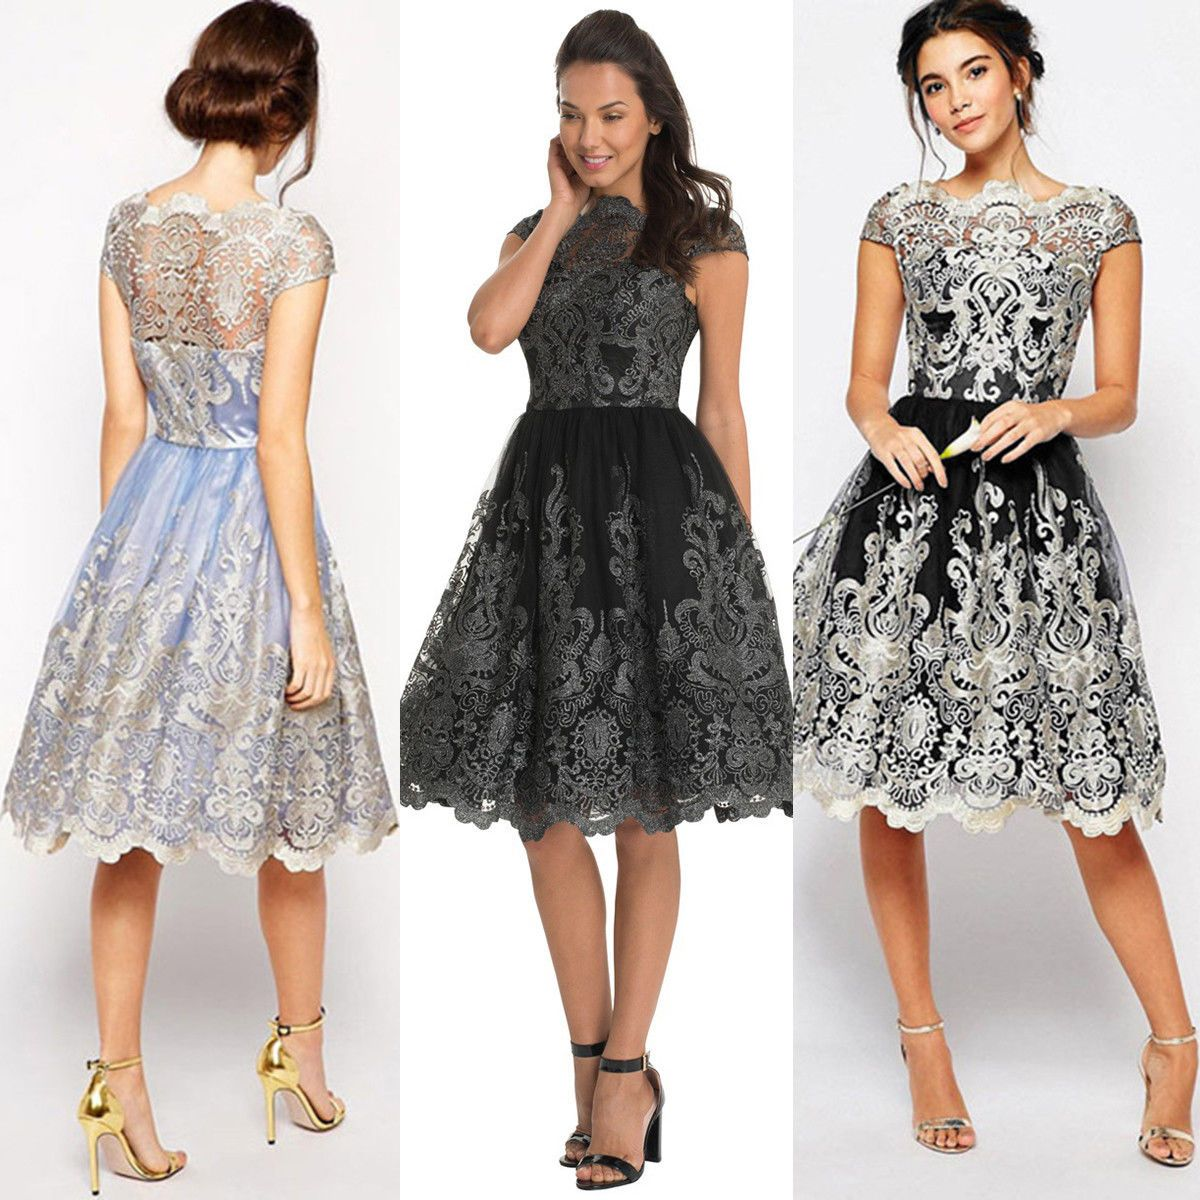 Women Long Lace Dress Prom Evening Party Cocktail Bridesmaid Wedding Gown Formal